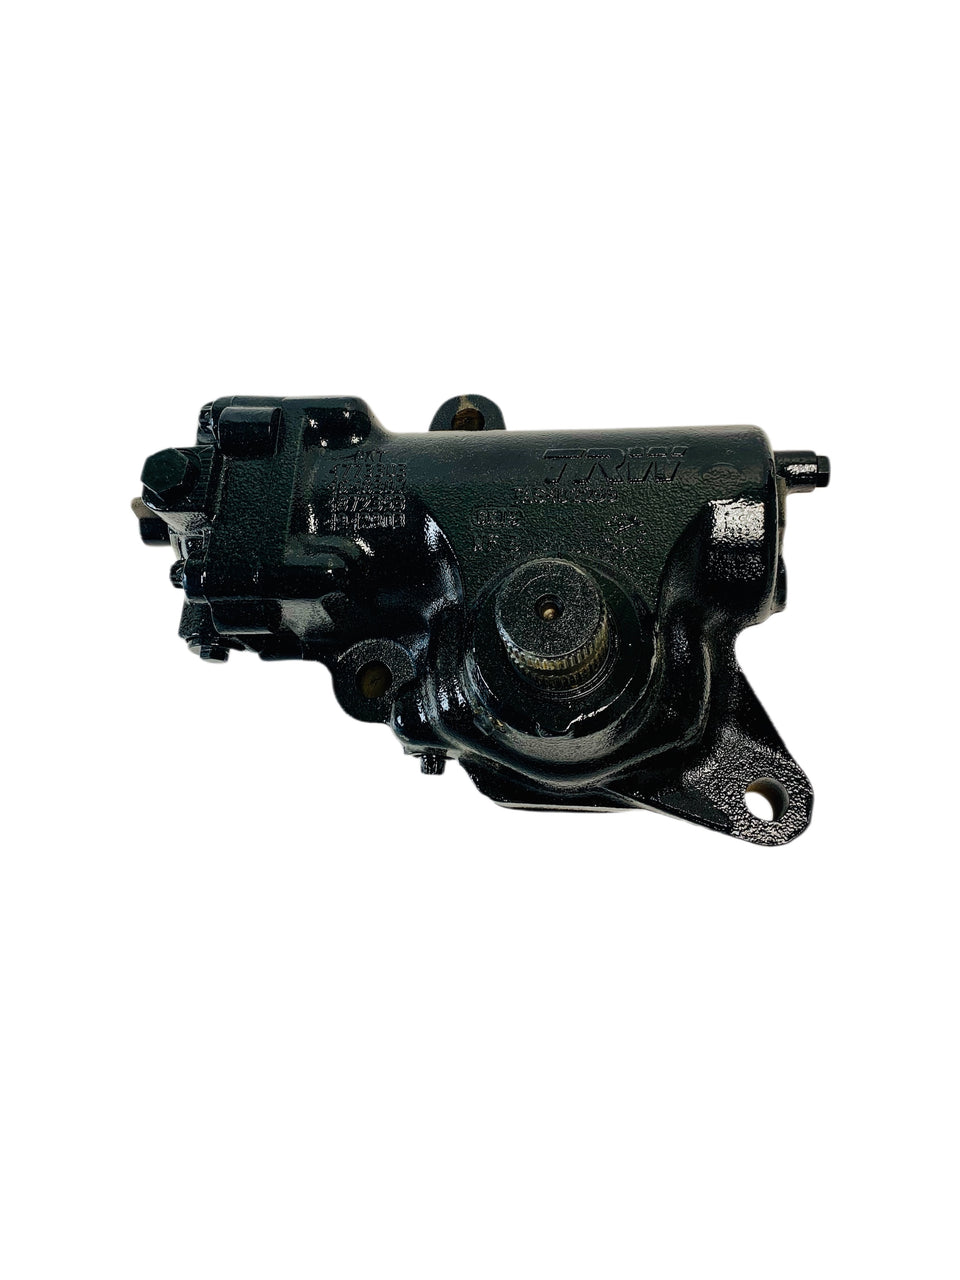 International OEM TRW RGT56002R Power Steering Gear Reman *No Core Charge*